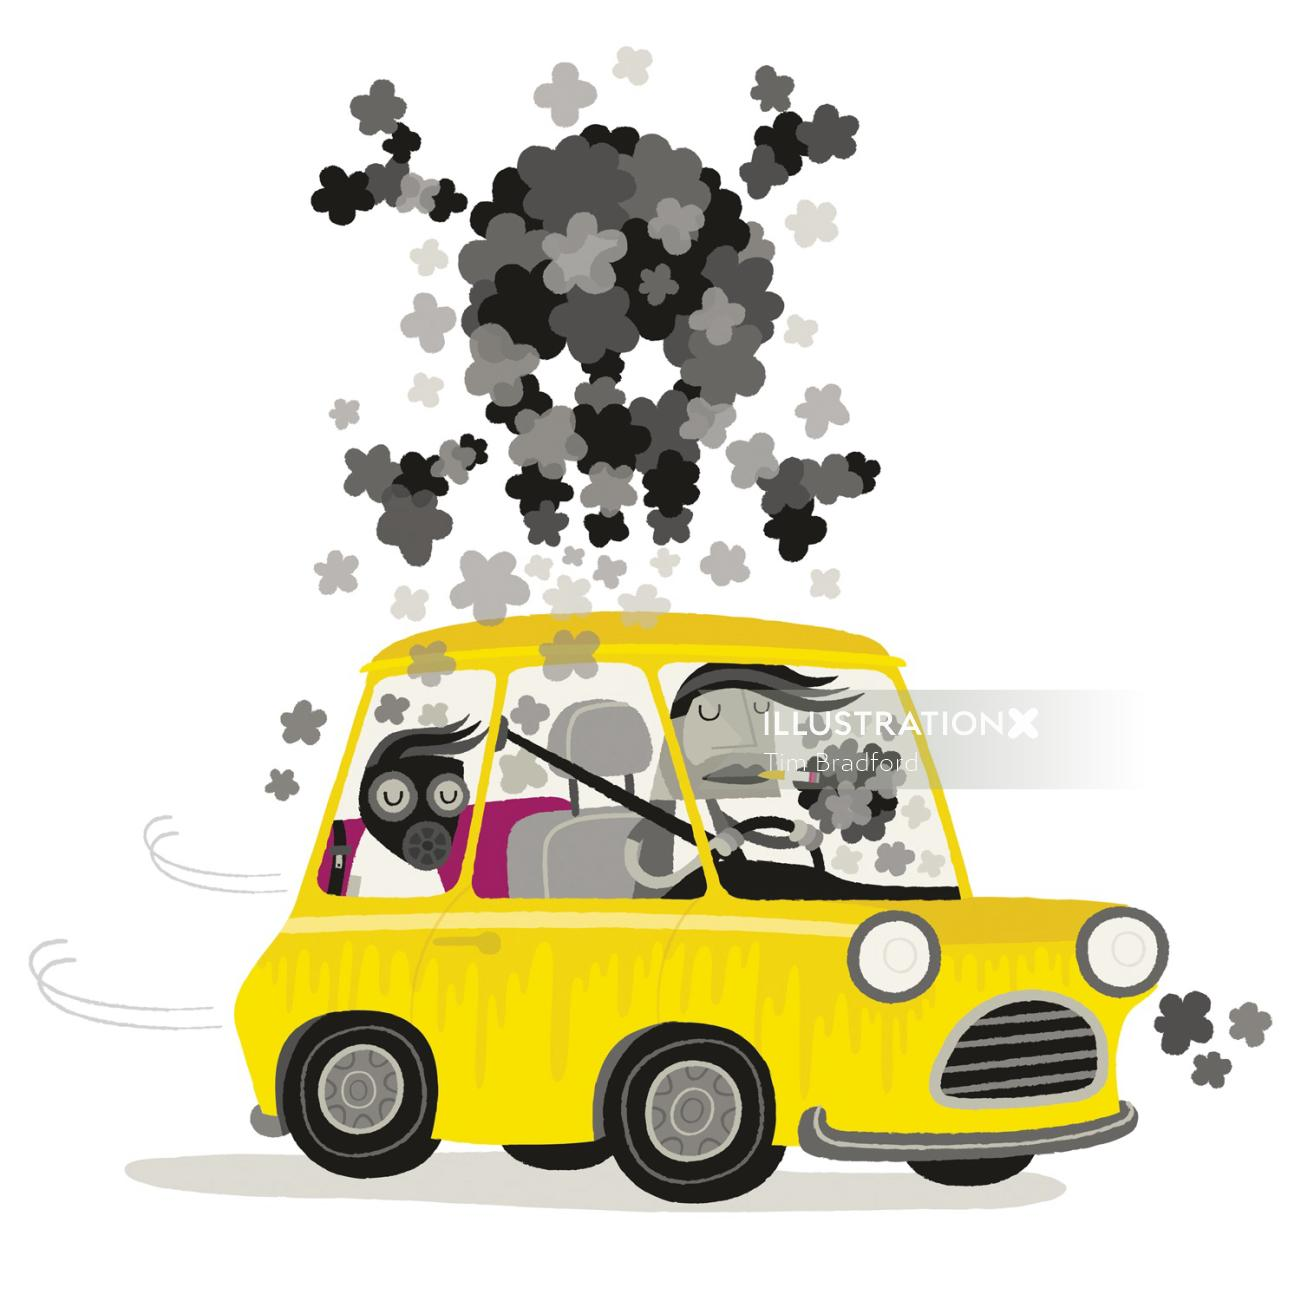 Conceptual illustration of Car with danger sign